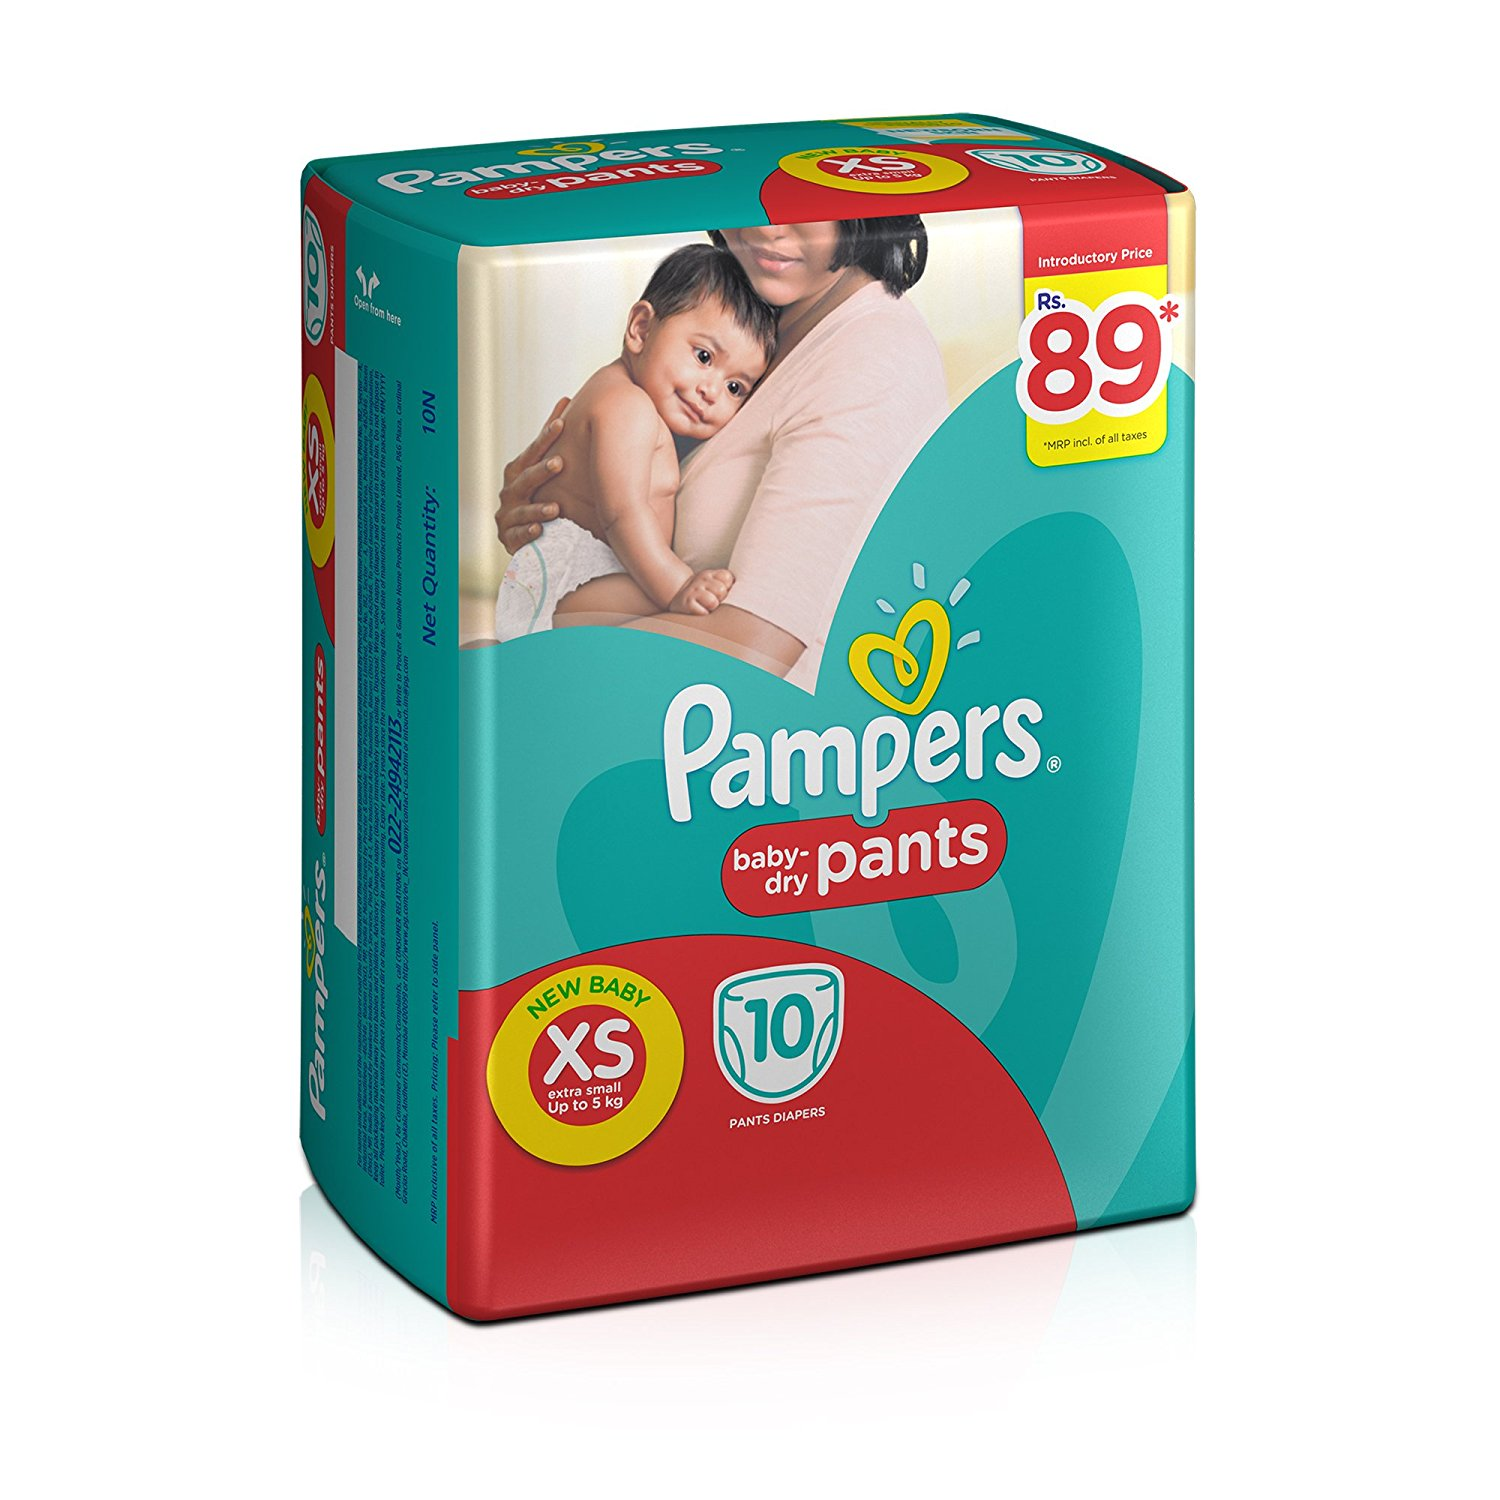 Pampers Dry Pants Diapers XS - 10 Nos